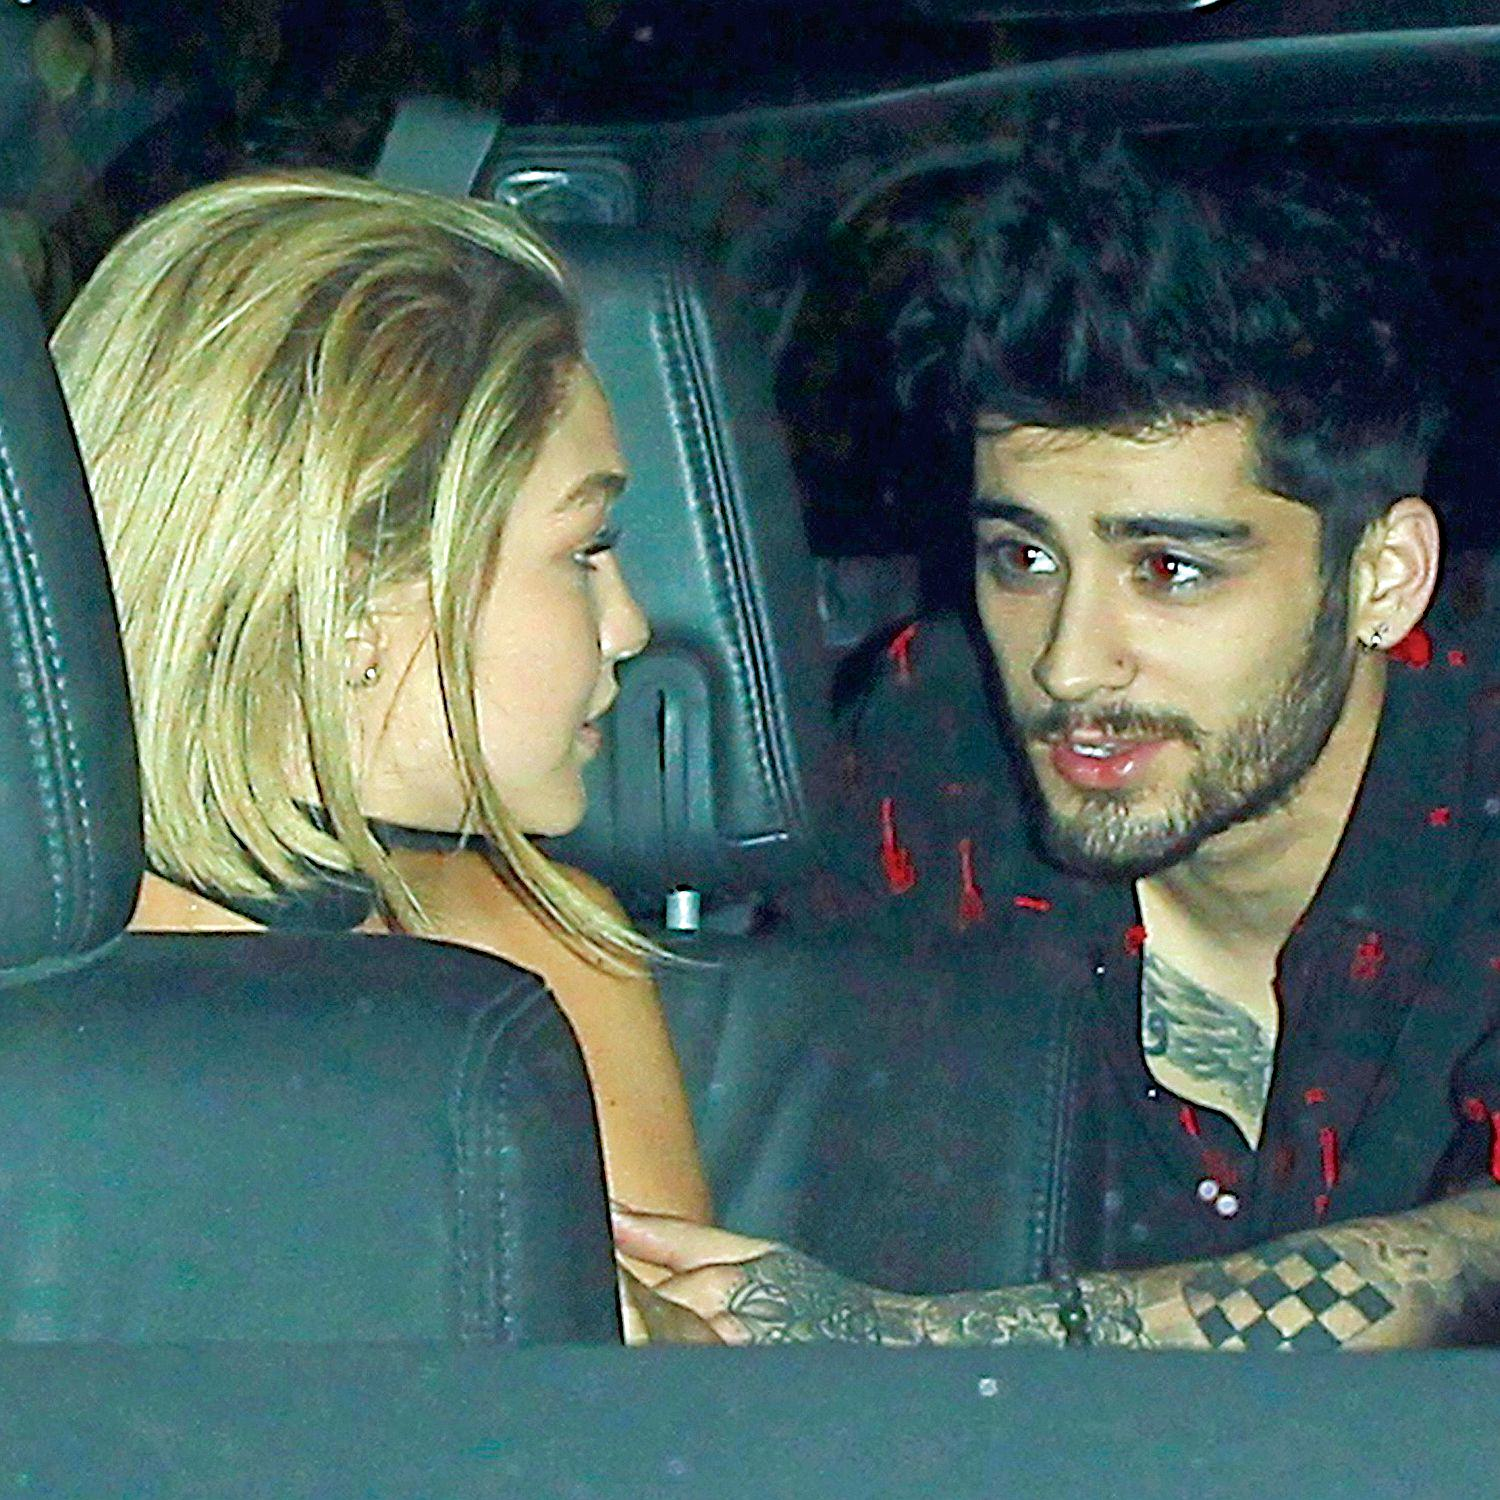 XPOSUREPHOTOSCOM Zayn Maliks Supermodel Girlfriends Family Fled Middle East As Refugees